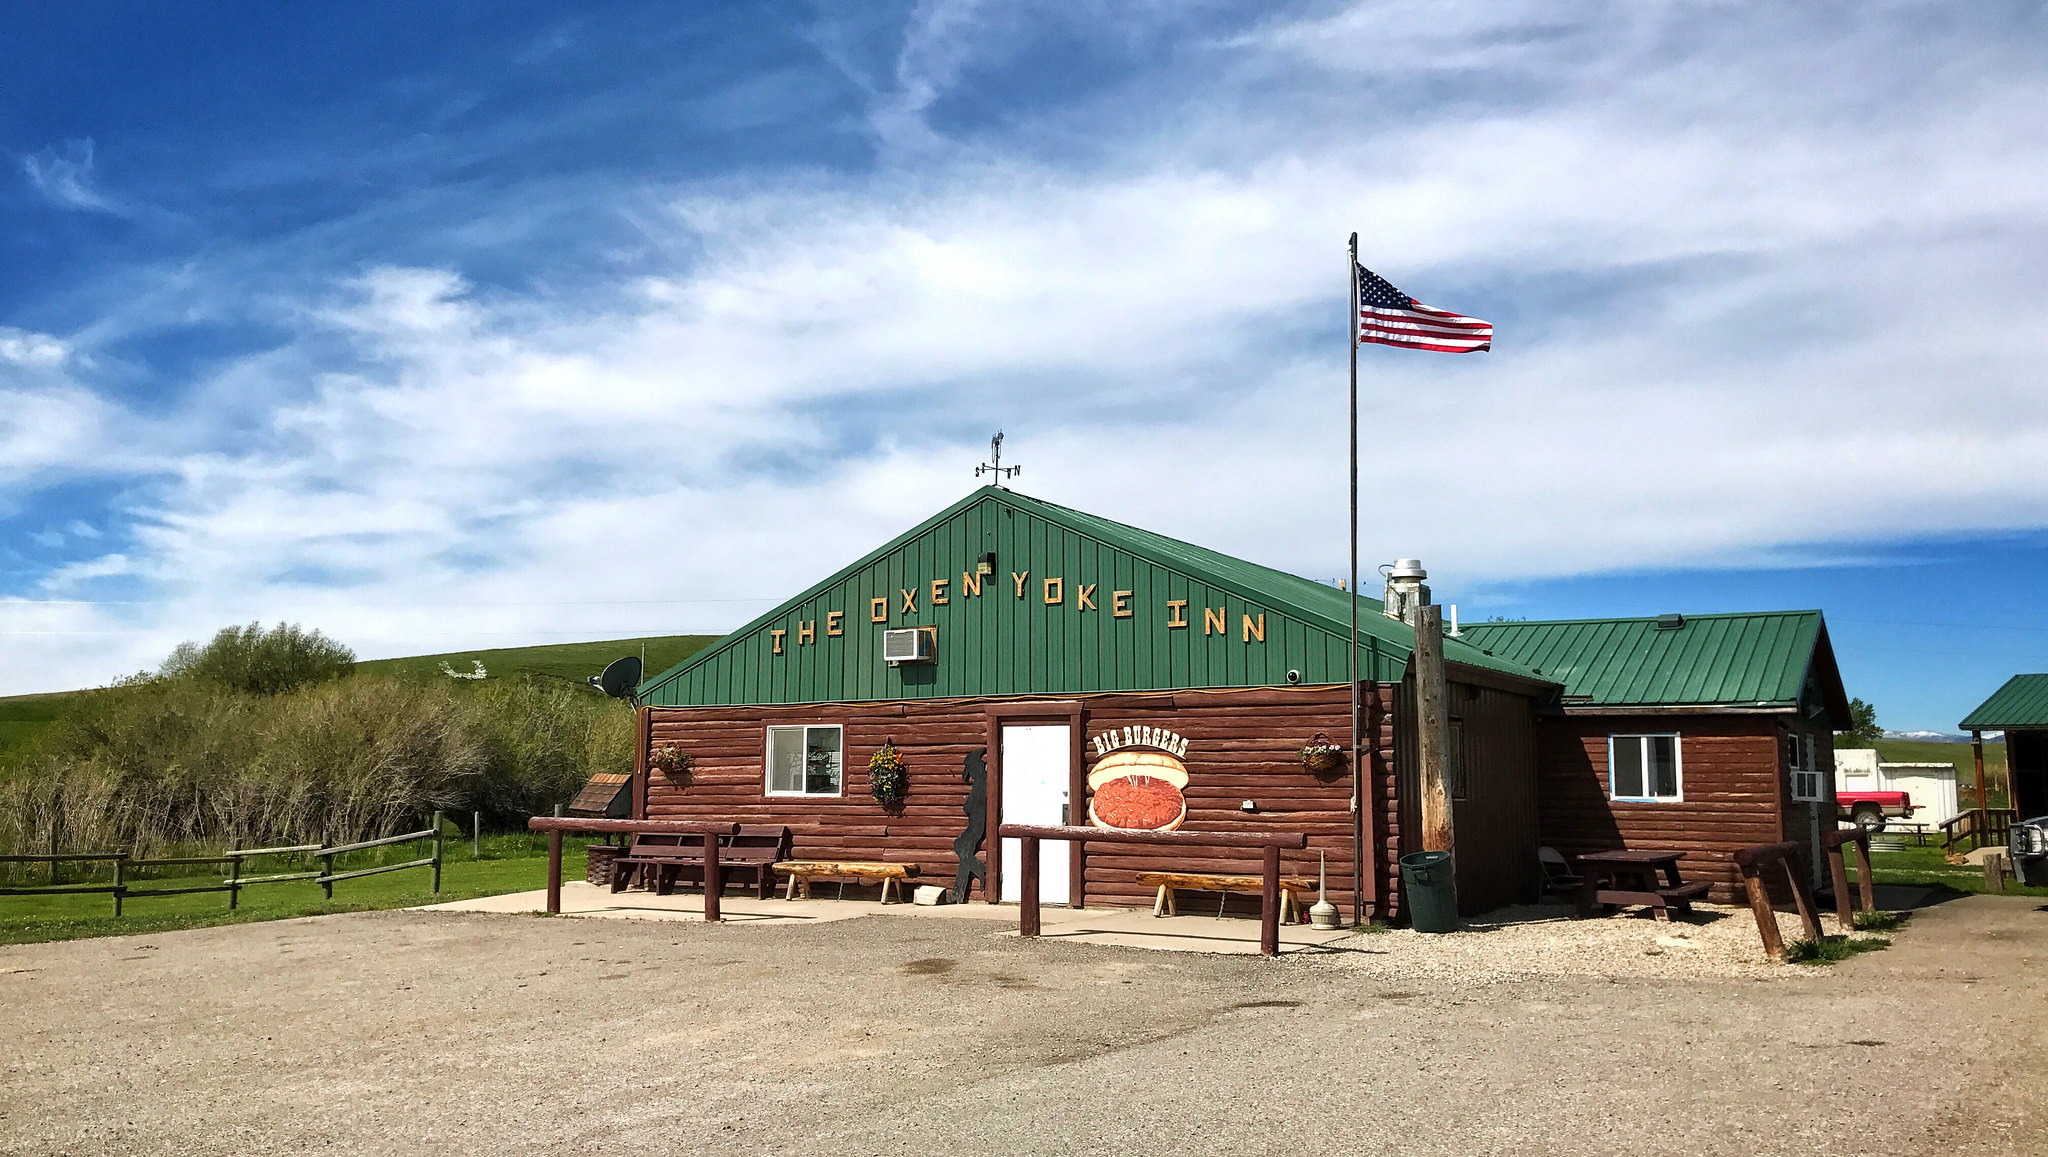 An amazing place to get great food, drinks and gamble in Utica, Montana on Highway 541 off Highway 87 in Judith Basin County.